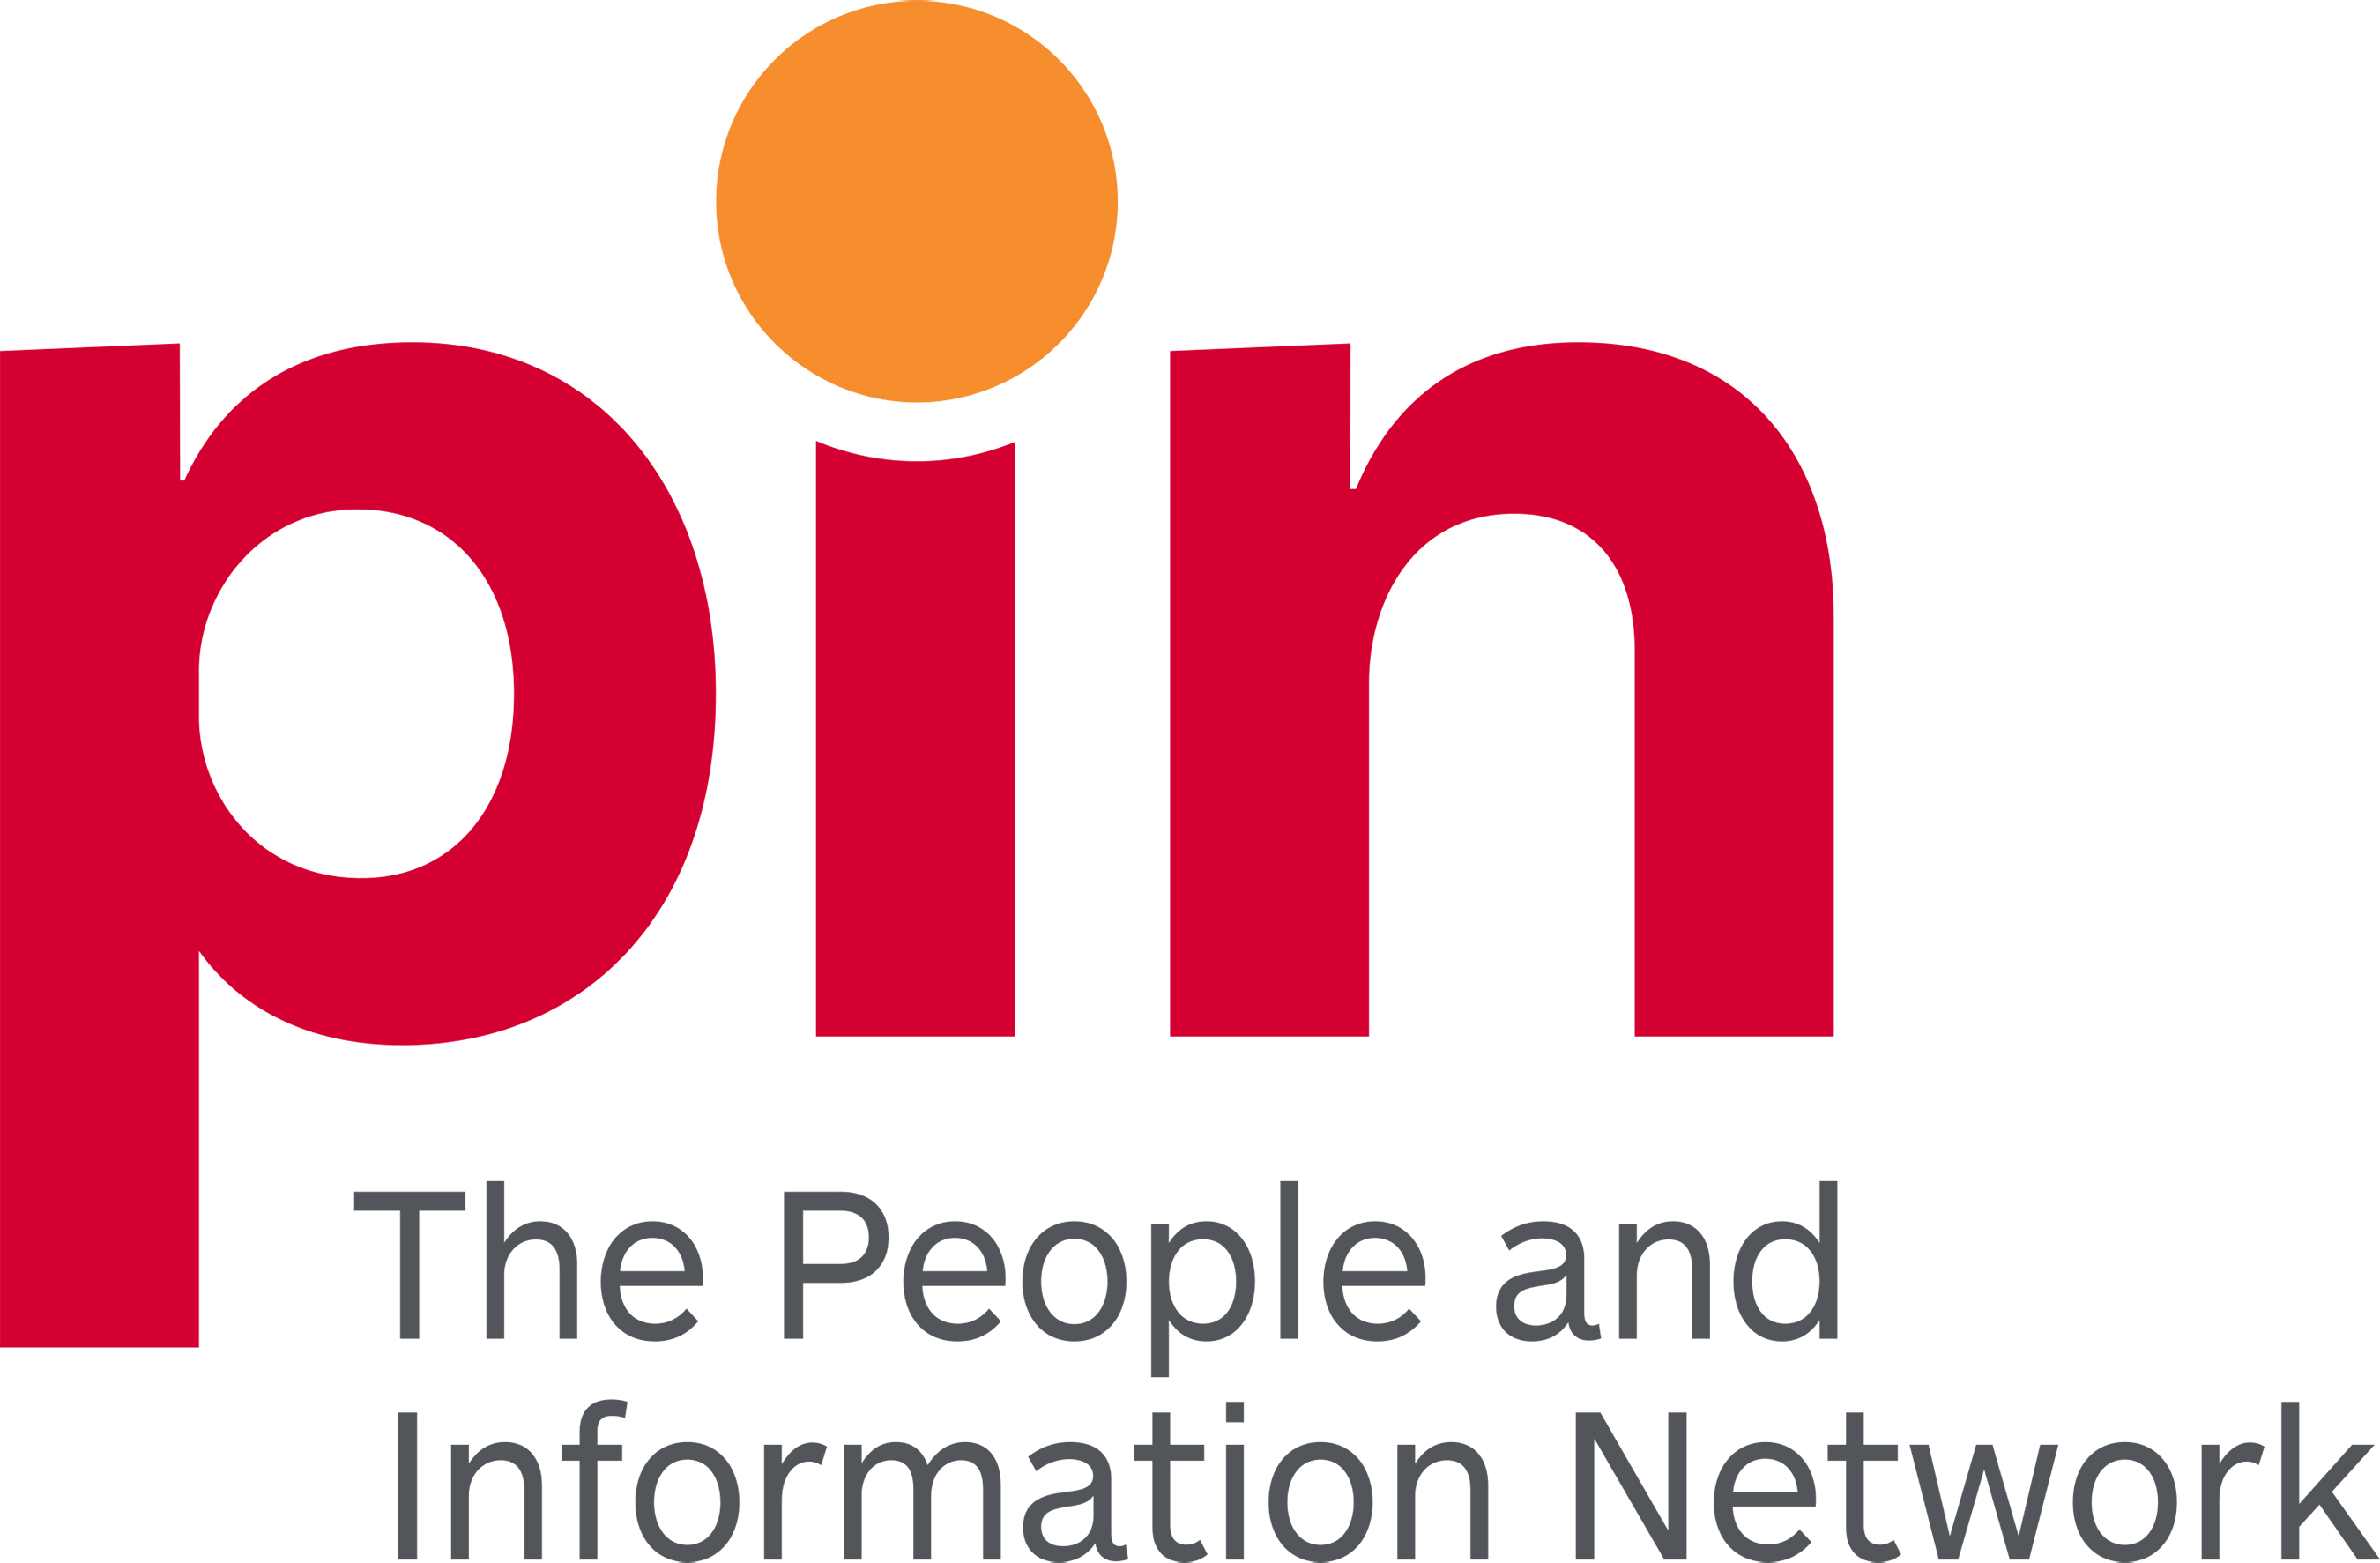 The People and Information Network